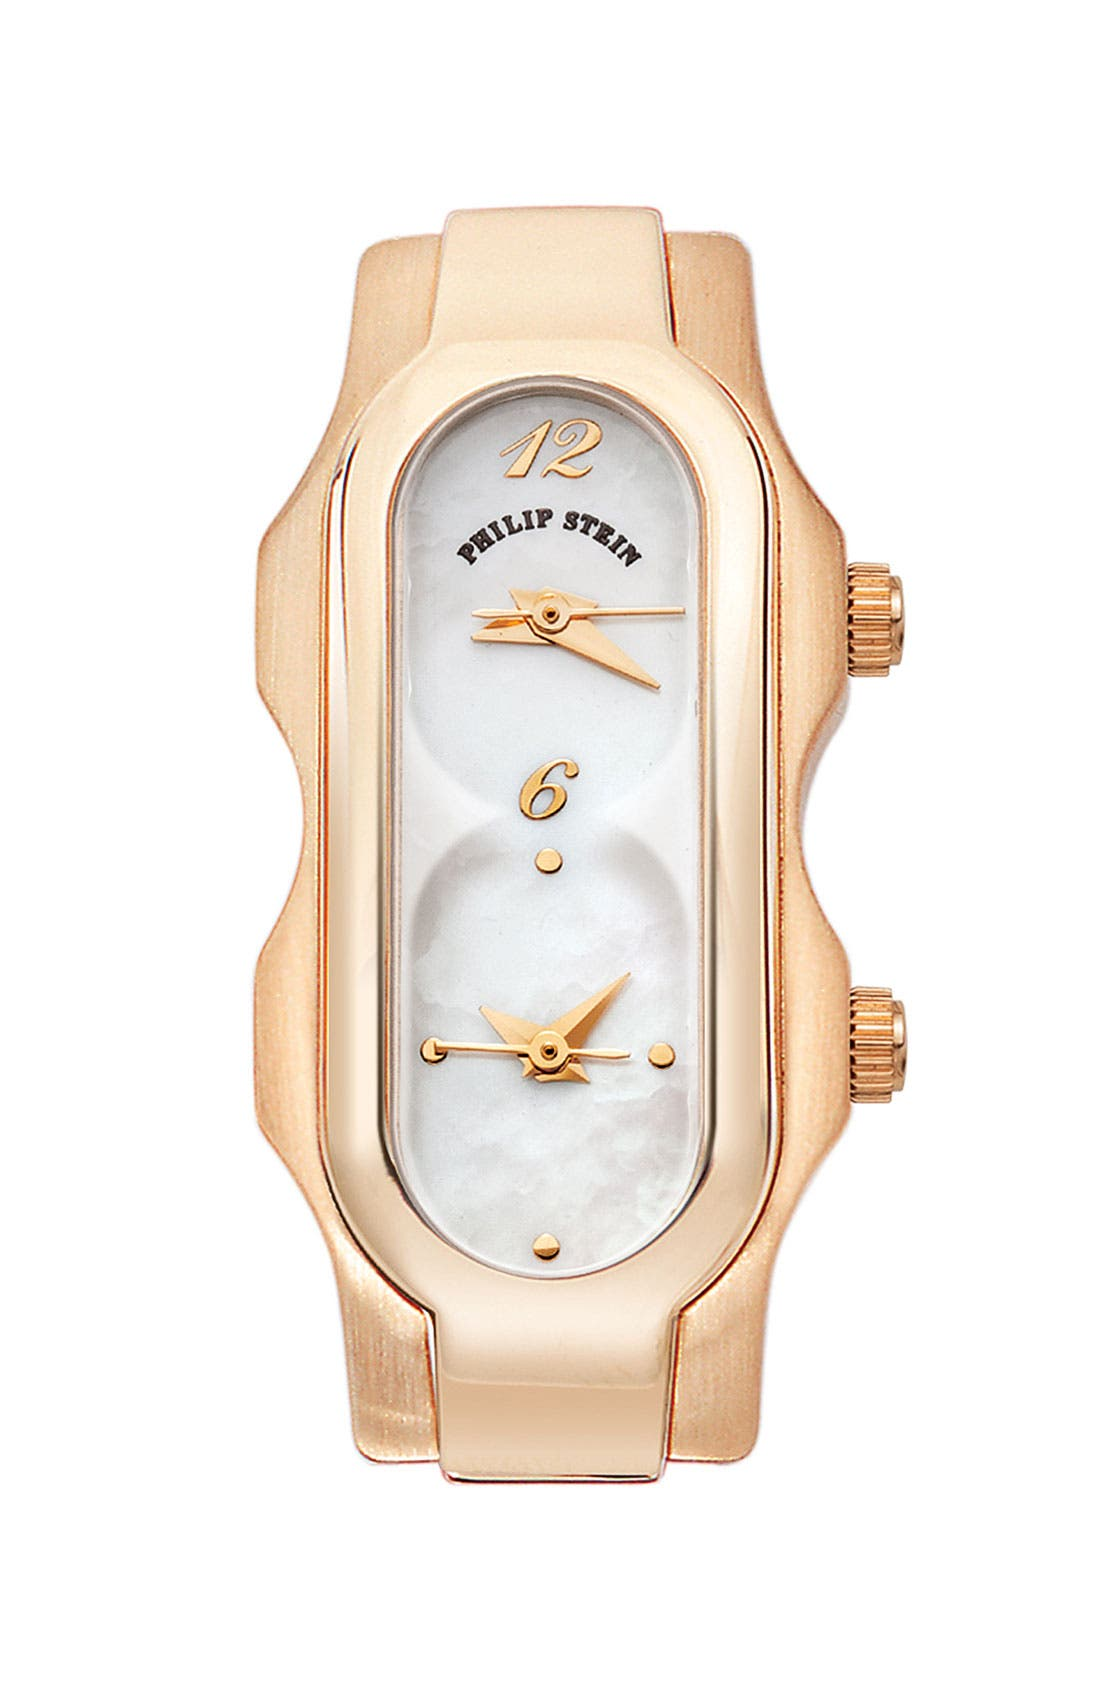 Main Image - Philip Stein® 'Signature' Mini Mother-of-Pearl Watch Case